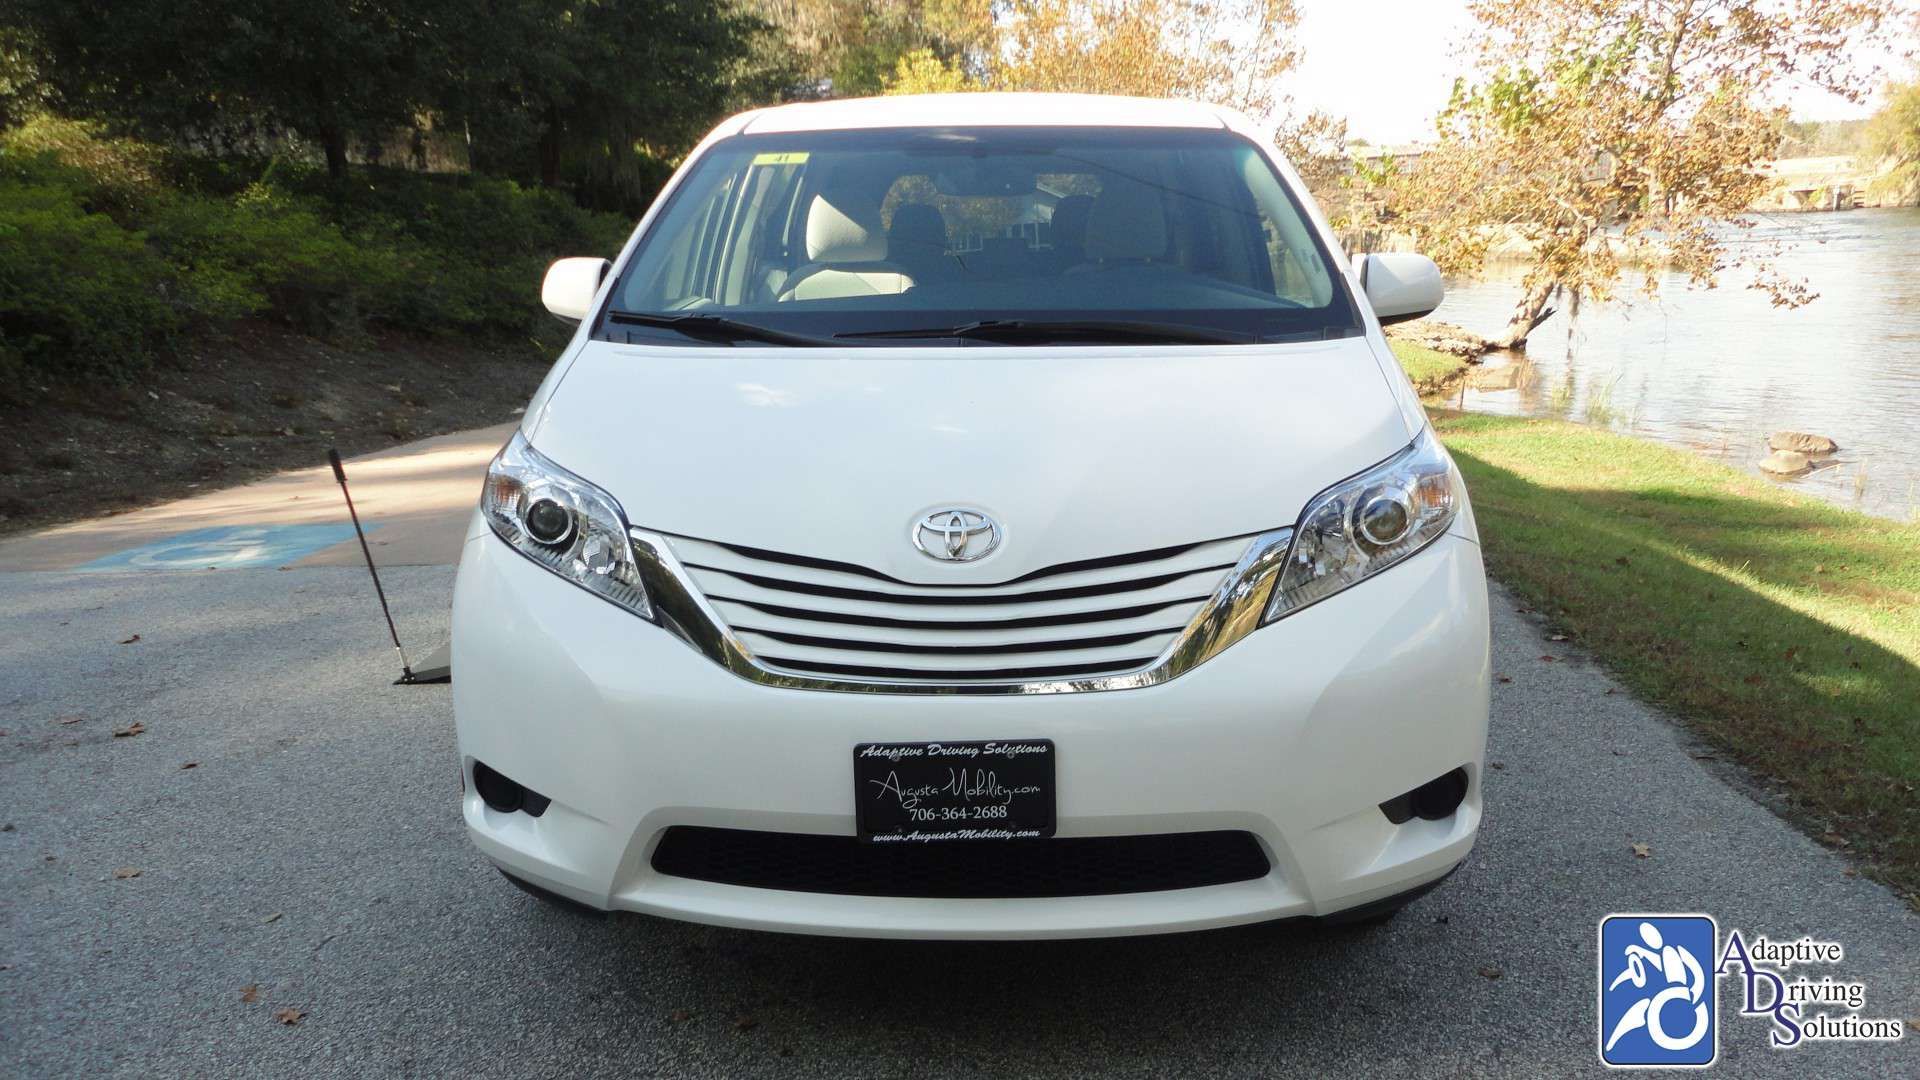 Toyota Sienna Service Manual: Dtc clear